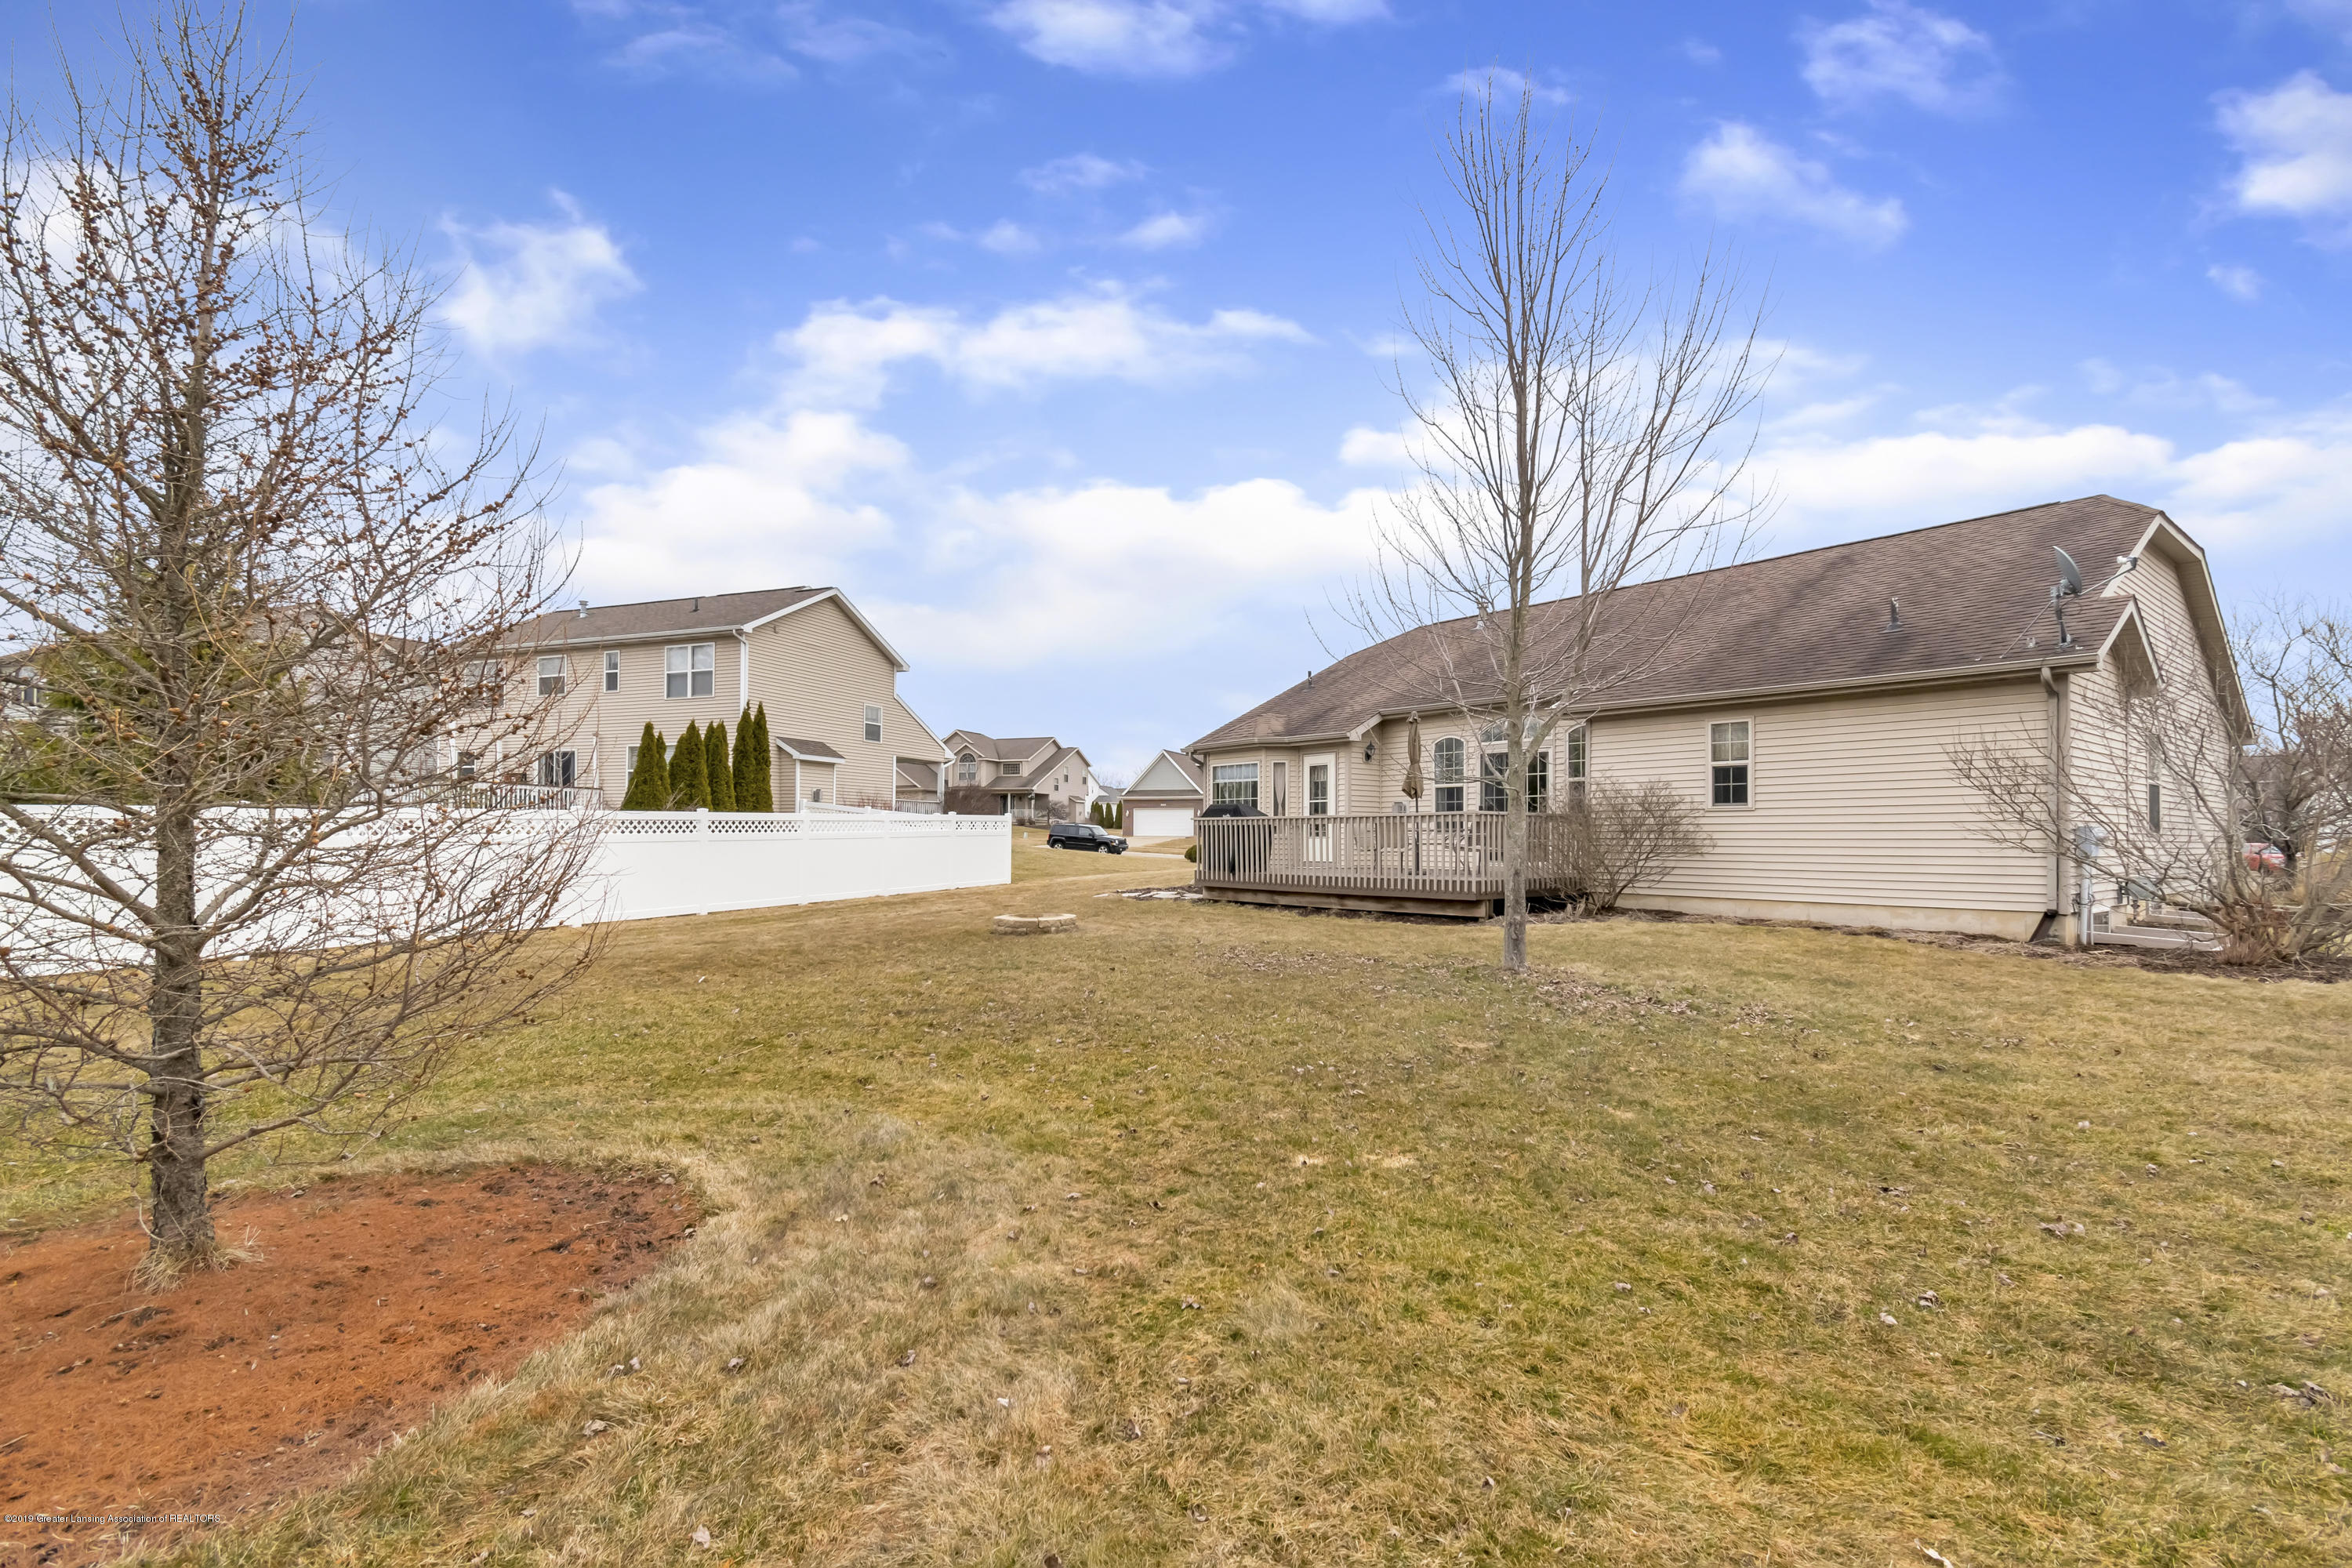 11553 Gold Fields Dr - 11553-Gold-Fields-Dr-Grand-Ledge-MI-wind - 36